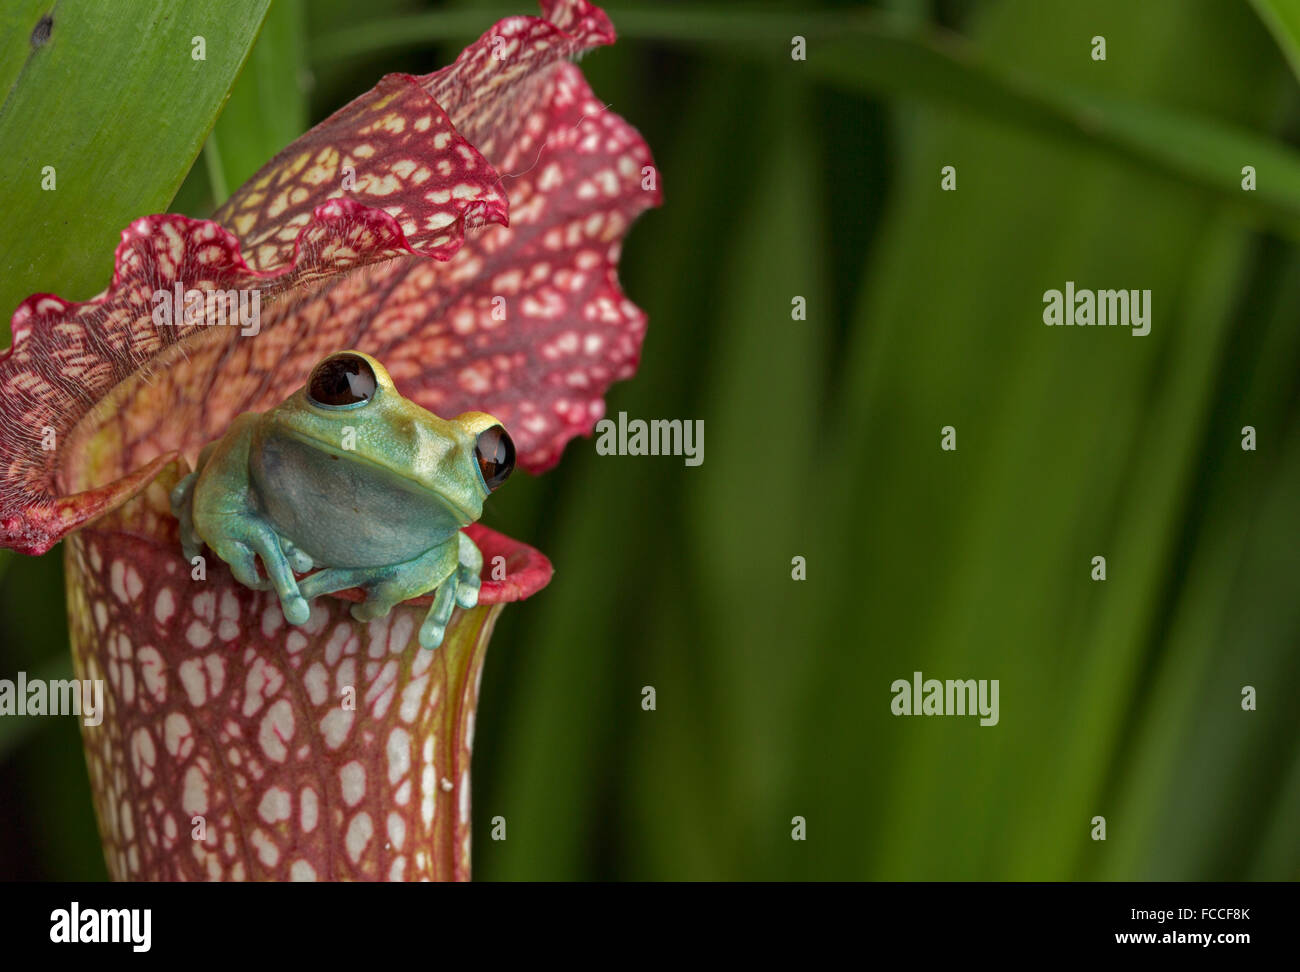 Maroon Eyed Tree Frog on Red Pitcher Plant - Stock Image